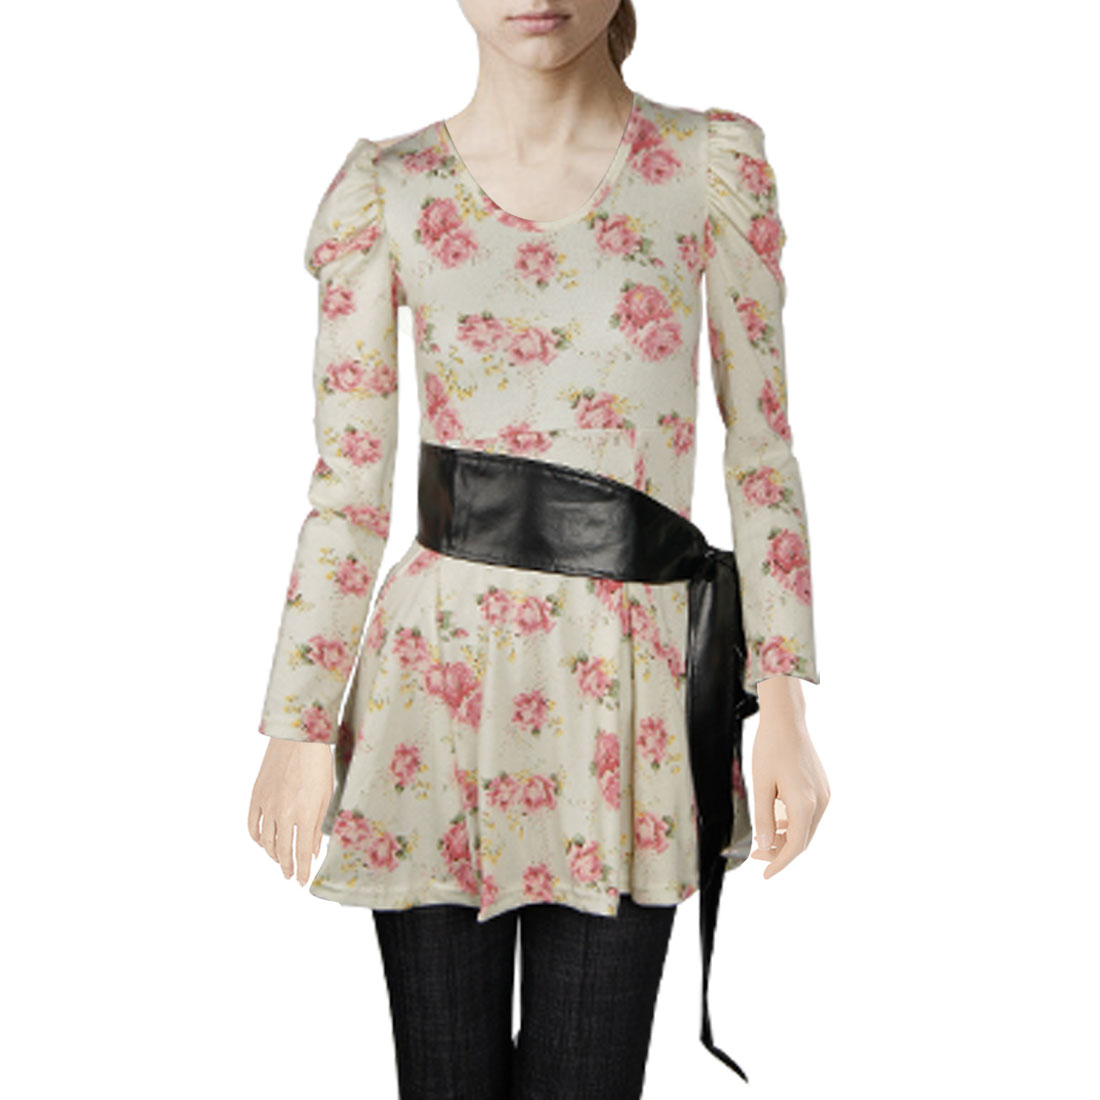 Ladies Beige Puff Long Sleeves Pink Floral Autumn Shirt XS